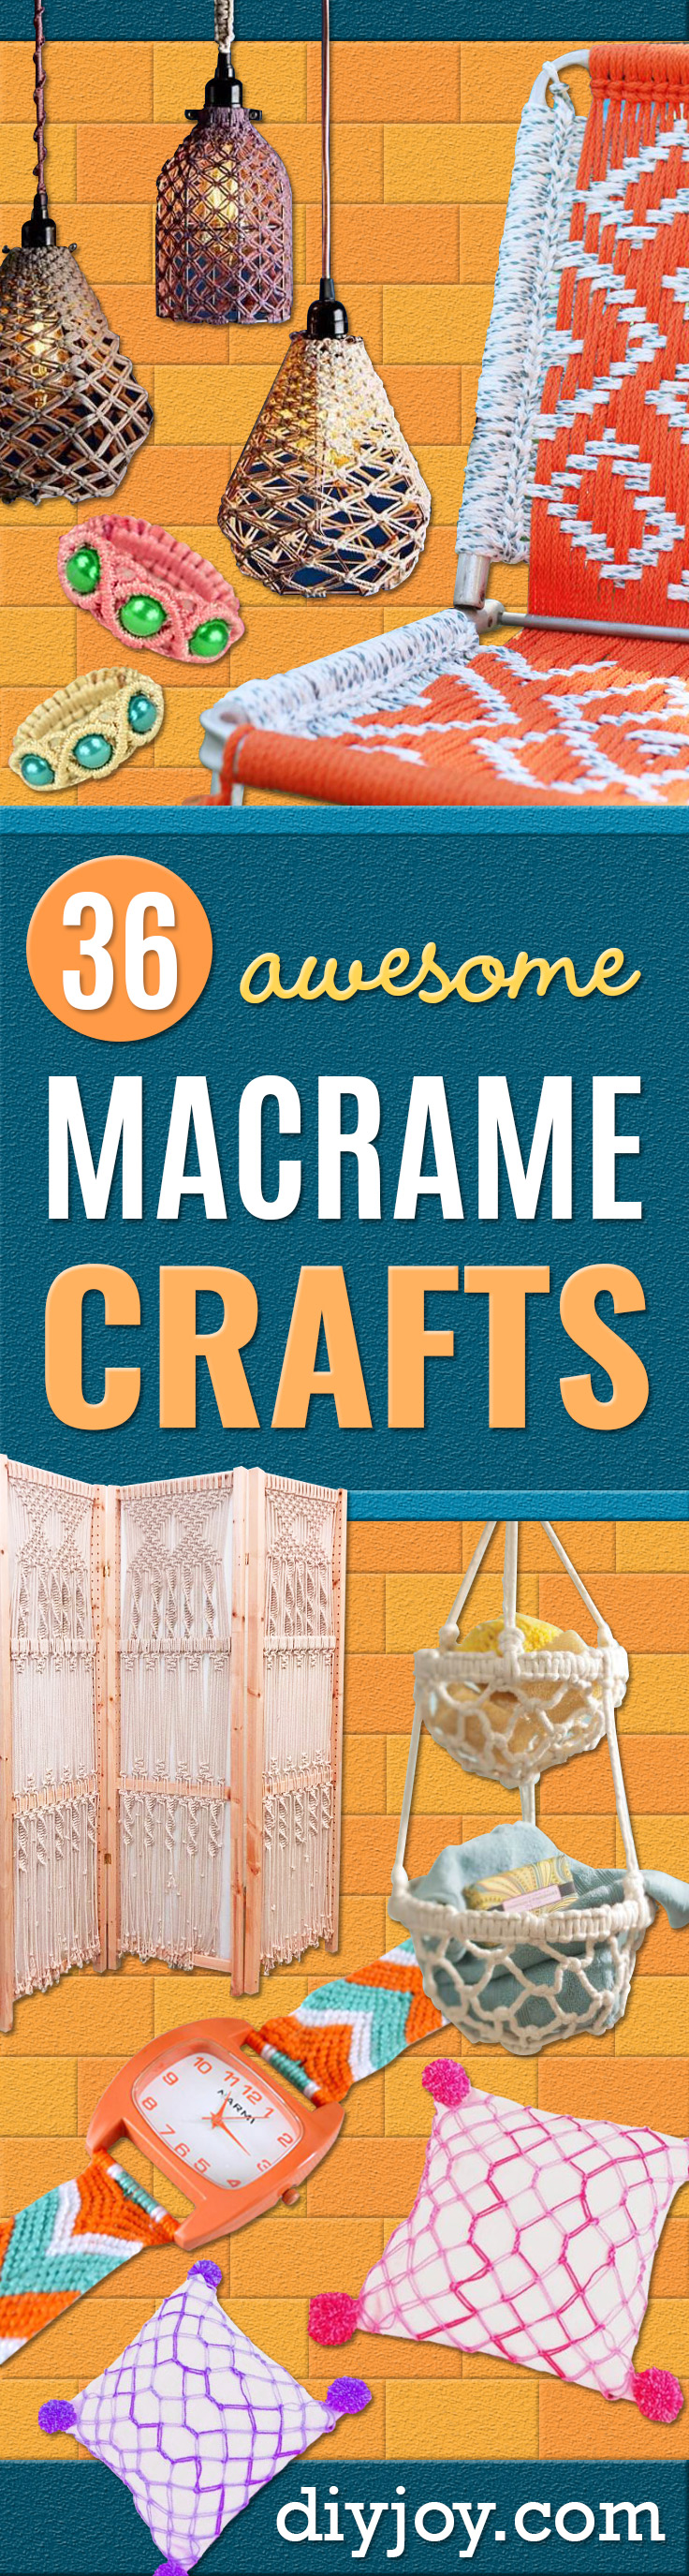 Macrame Crafts - DIY Ideas and Easy Macrame Projects for Home Decor, Gifts and Wall Art - Cool Bracelets, Plant Holders, Beautiful Dream Catchers, Things To Make and Sell on Etsy, How To Make Knots for Your Macrame Craft Projects, Fun Ideas Even Kids and Teens Can Make #macrame #diy #crafts